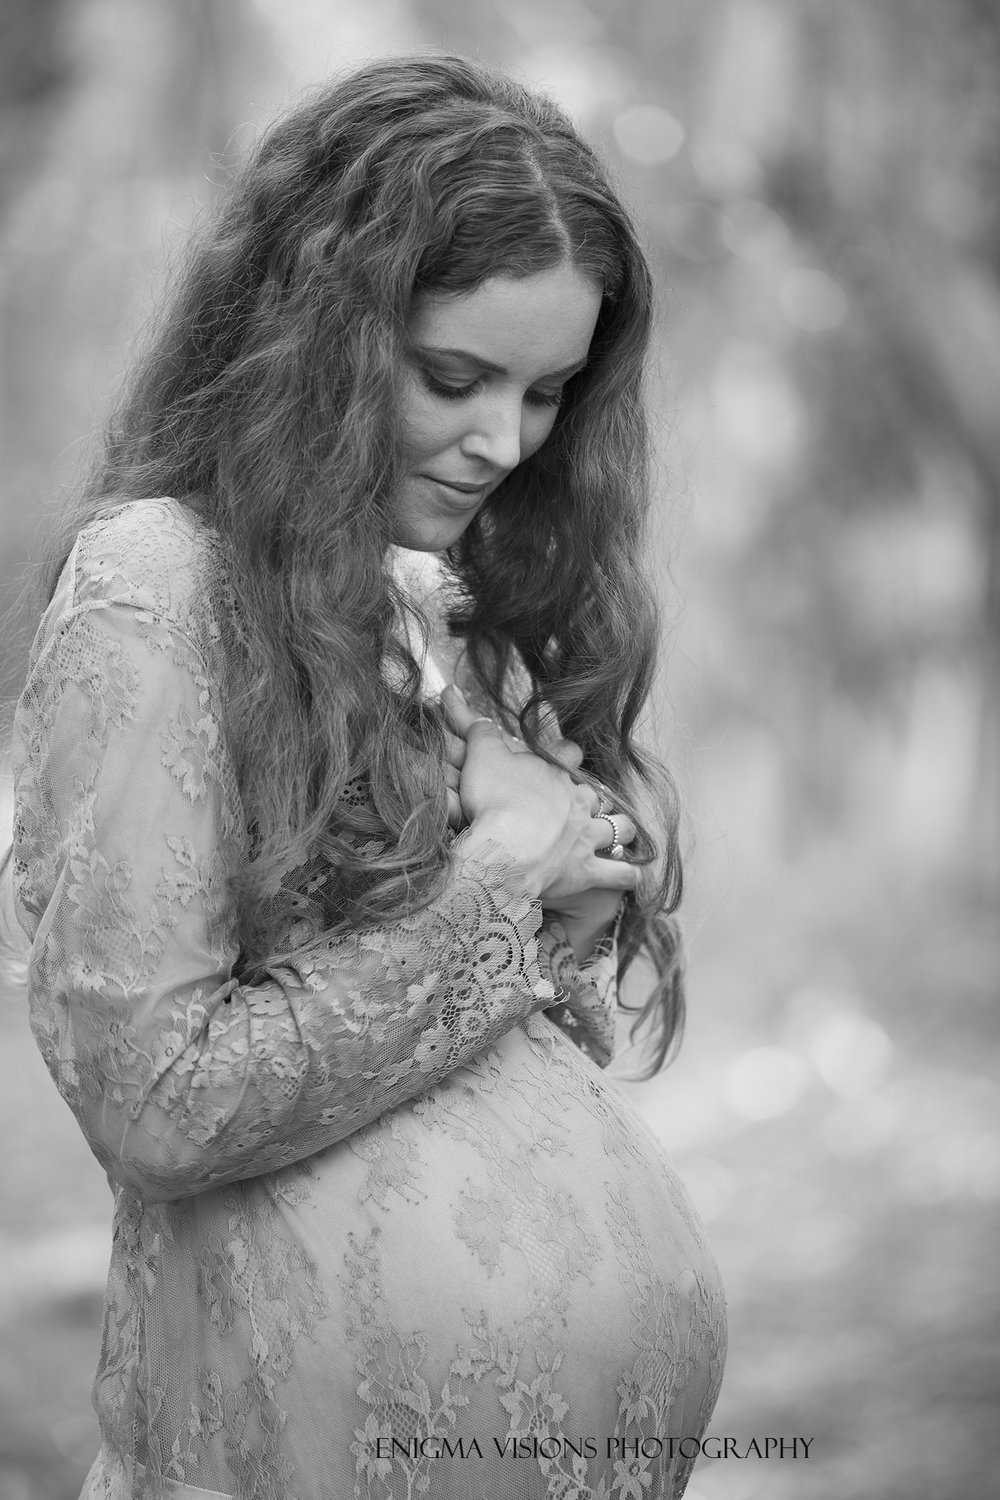 Enigma_Visions_Photography_Maternity_Mahlea013.jpg